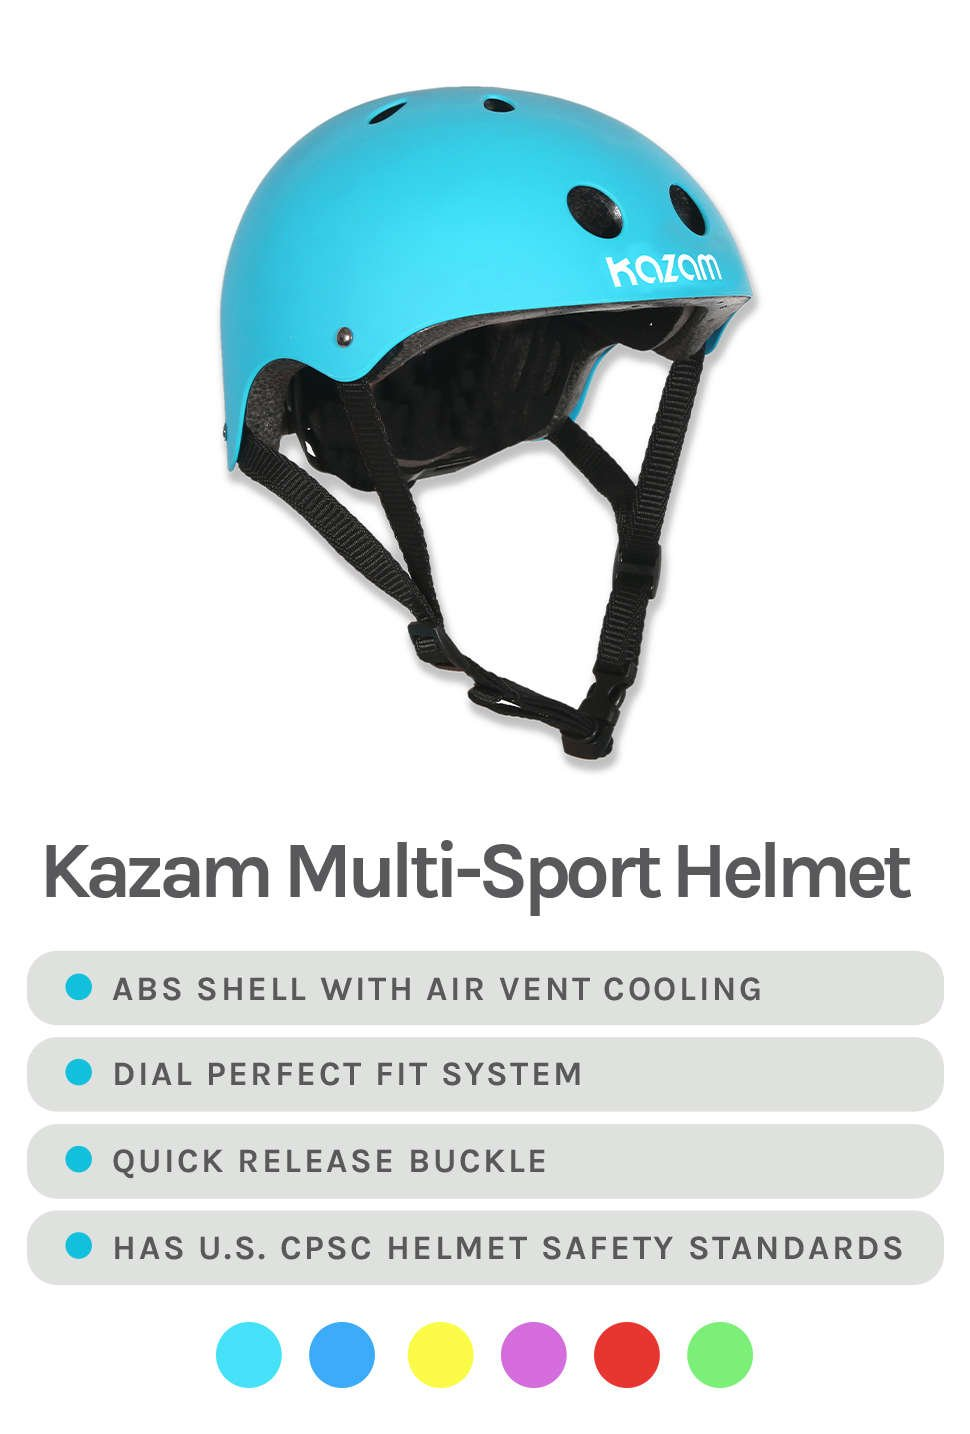 Kazam Multi-Sport Helmet - Features & Colors